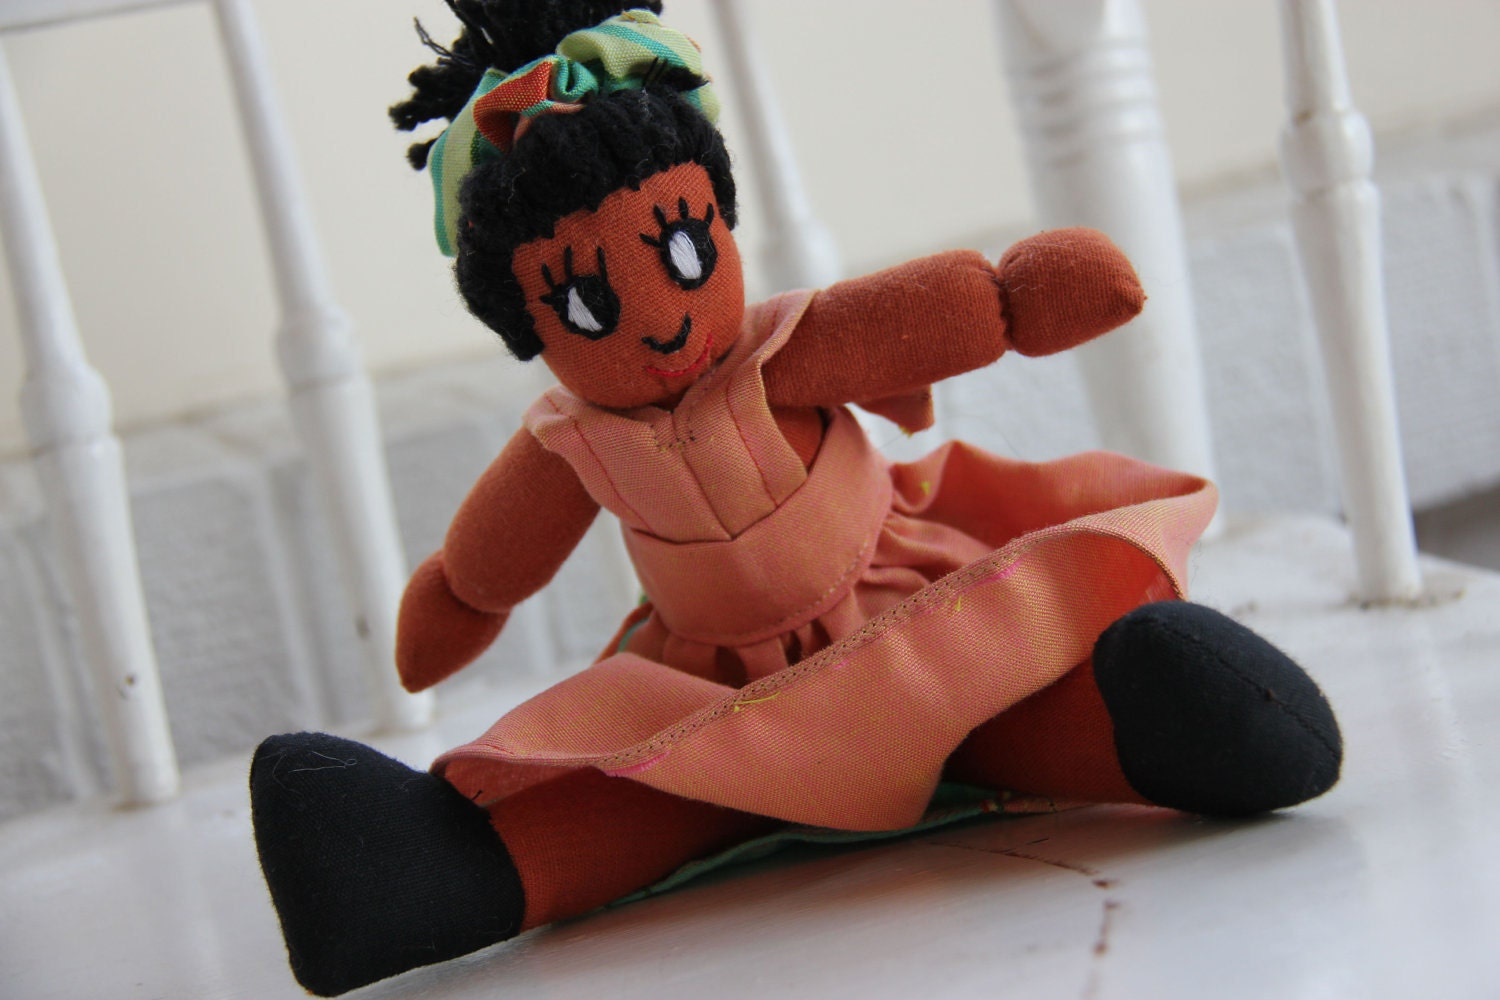 Agatha Girl Doll in Salmon with Stripes from Kenya - Purchase Benefits Adoption